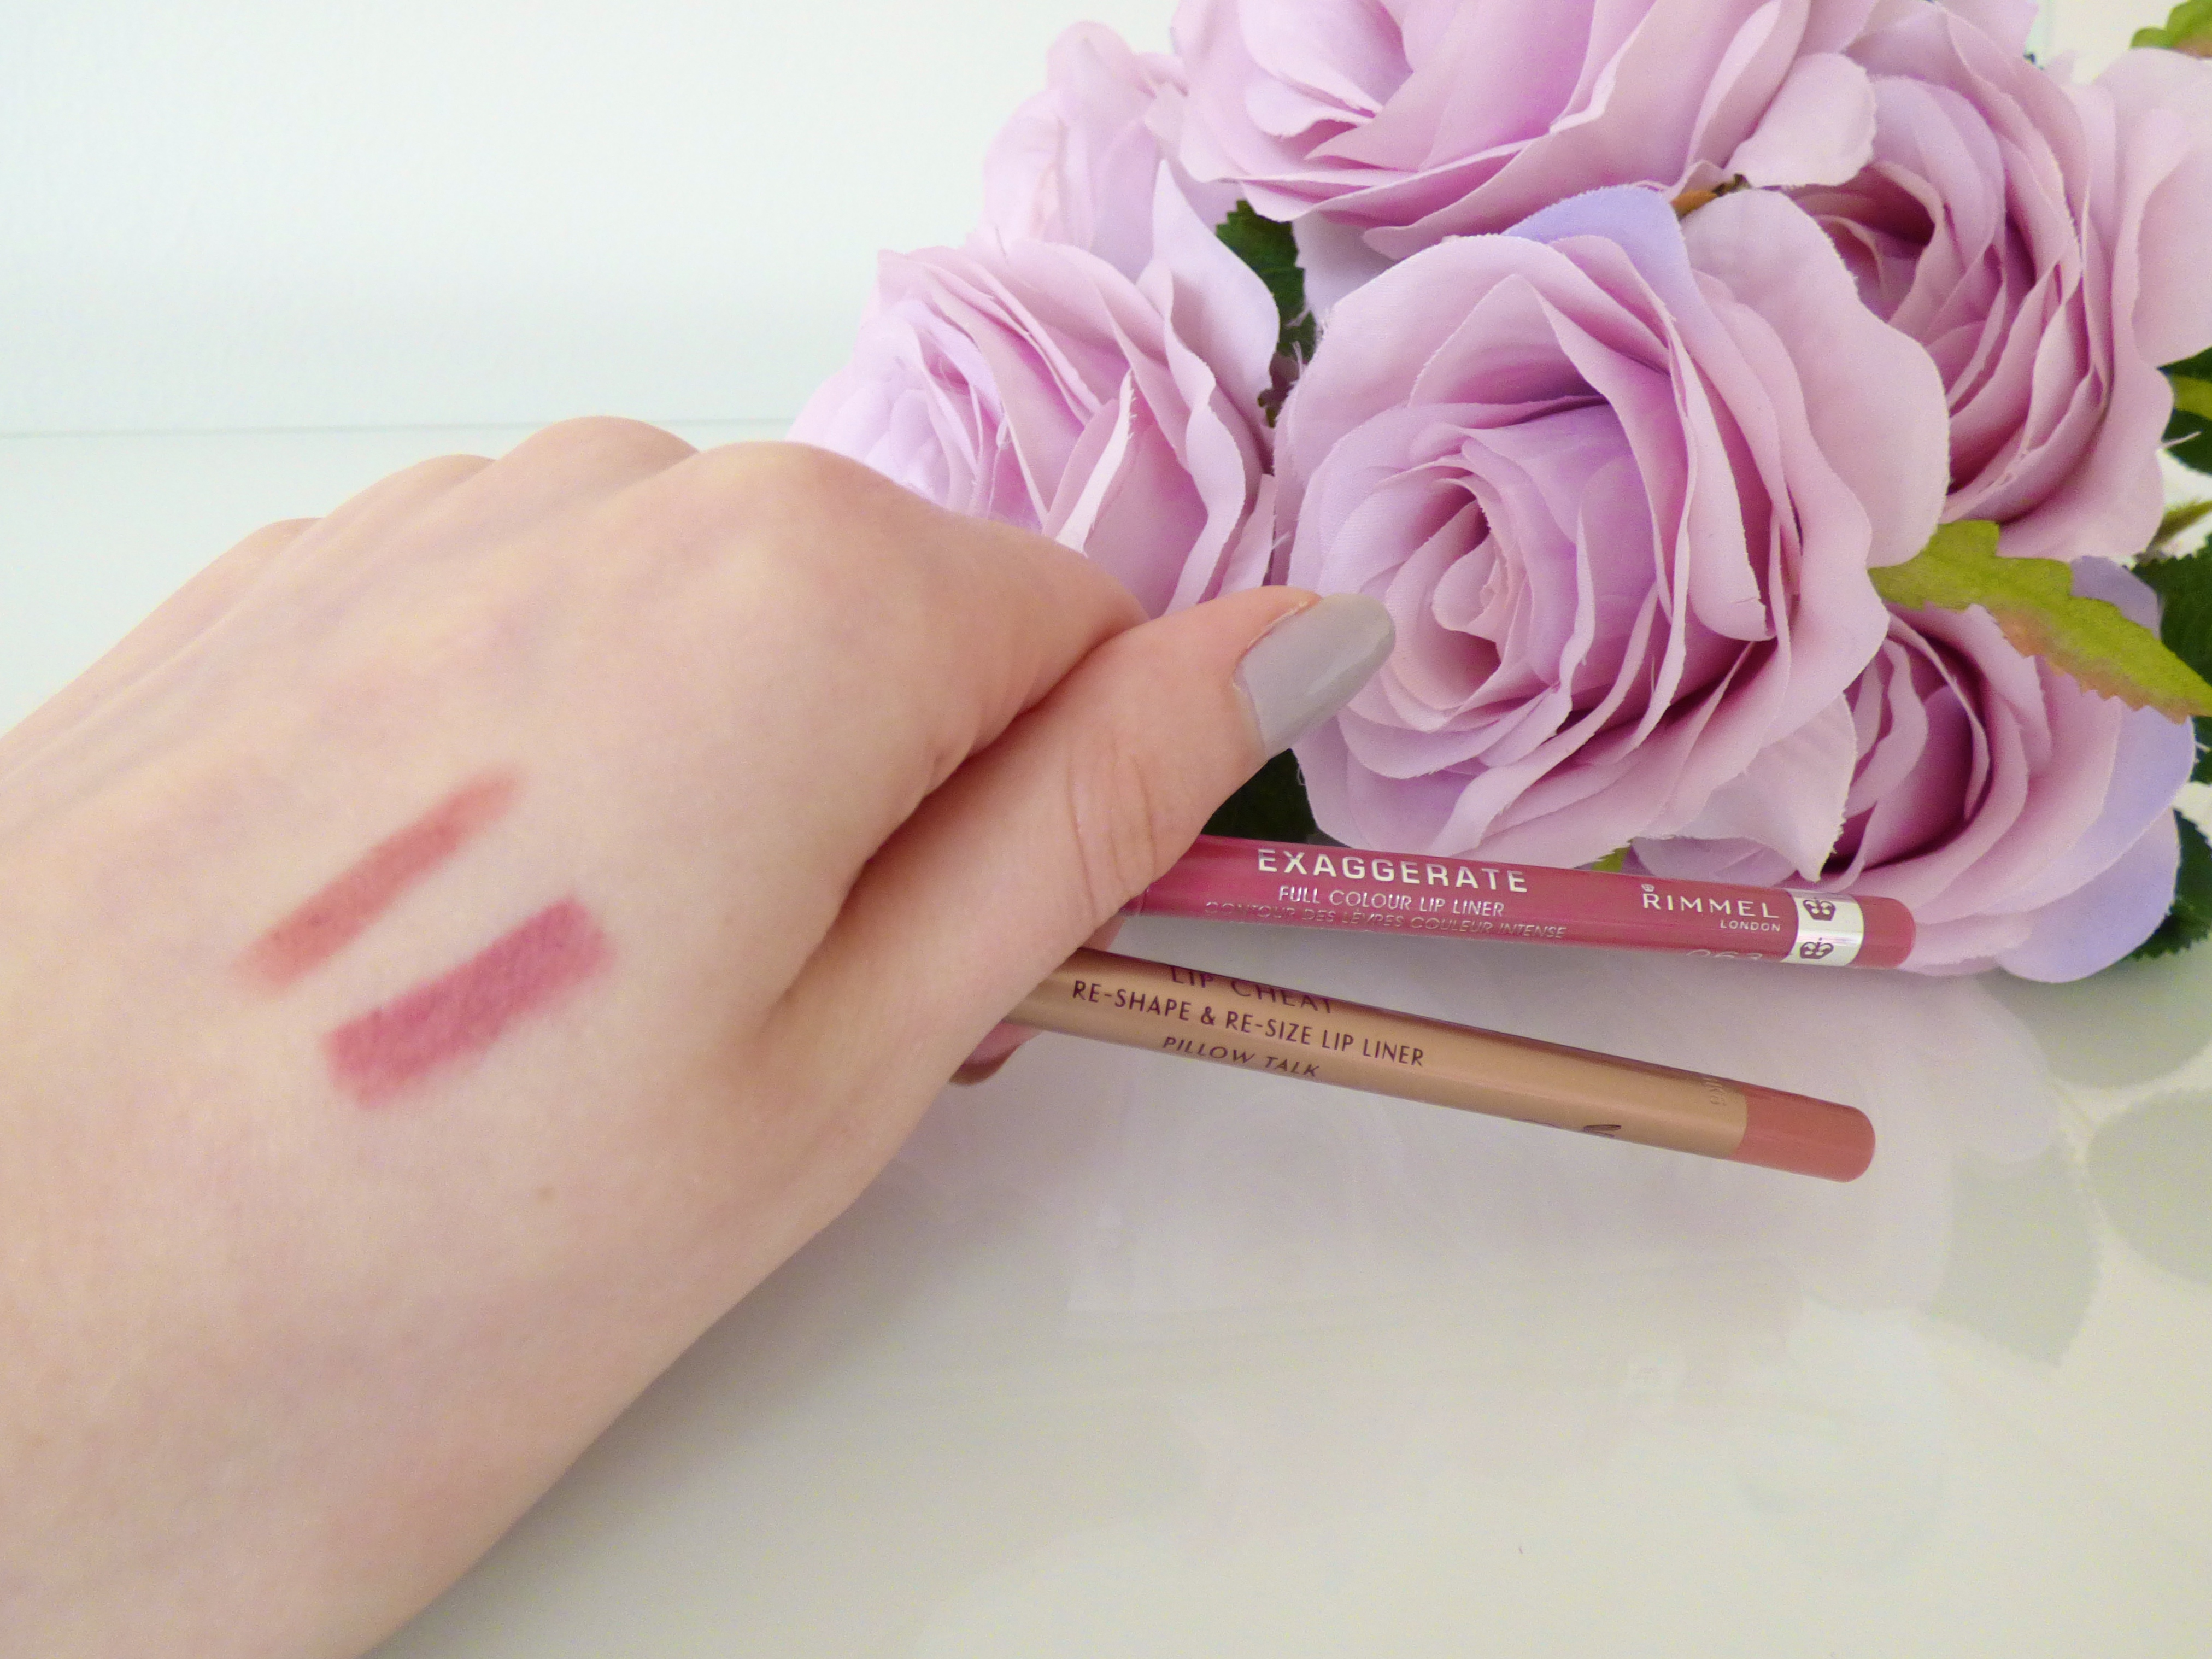 Photo of Rimmel London Exaggerate Automatic Lip Liner uploaded by Stephanie H.